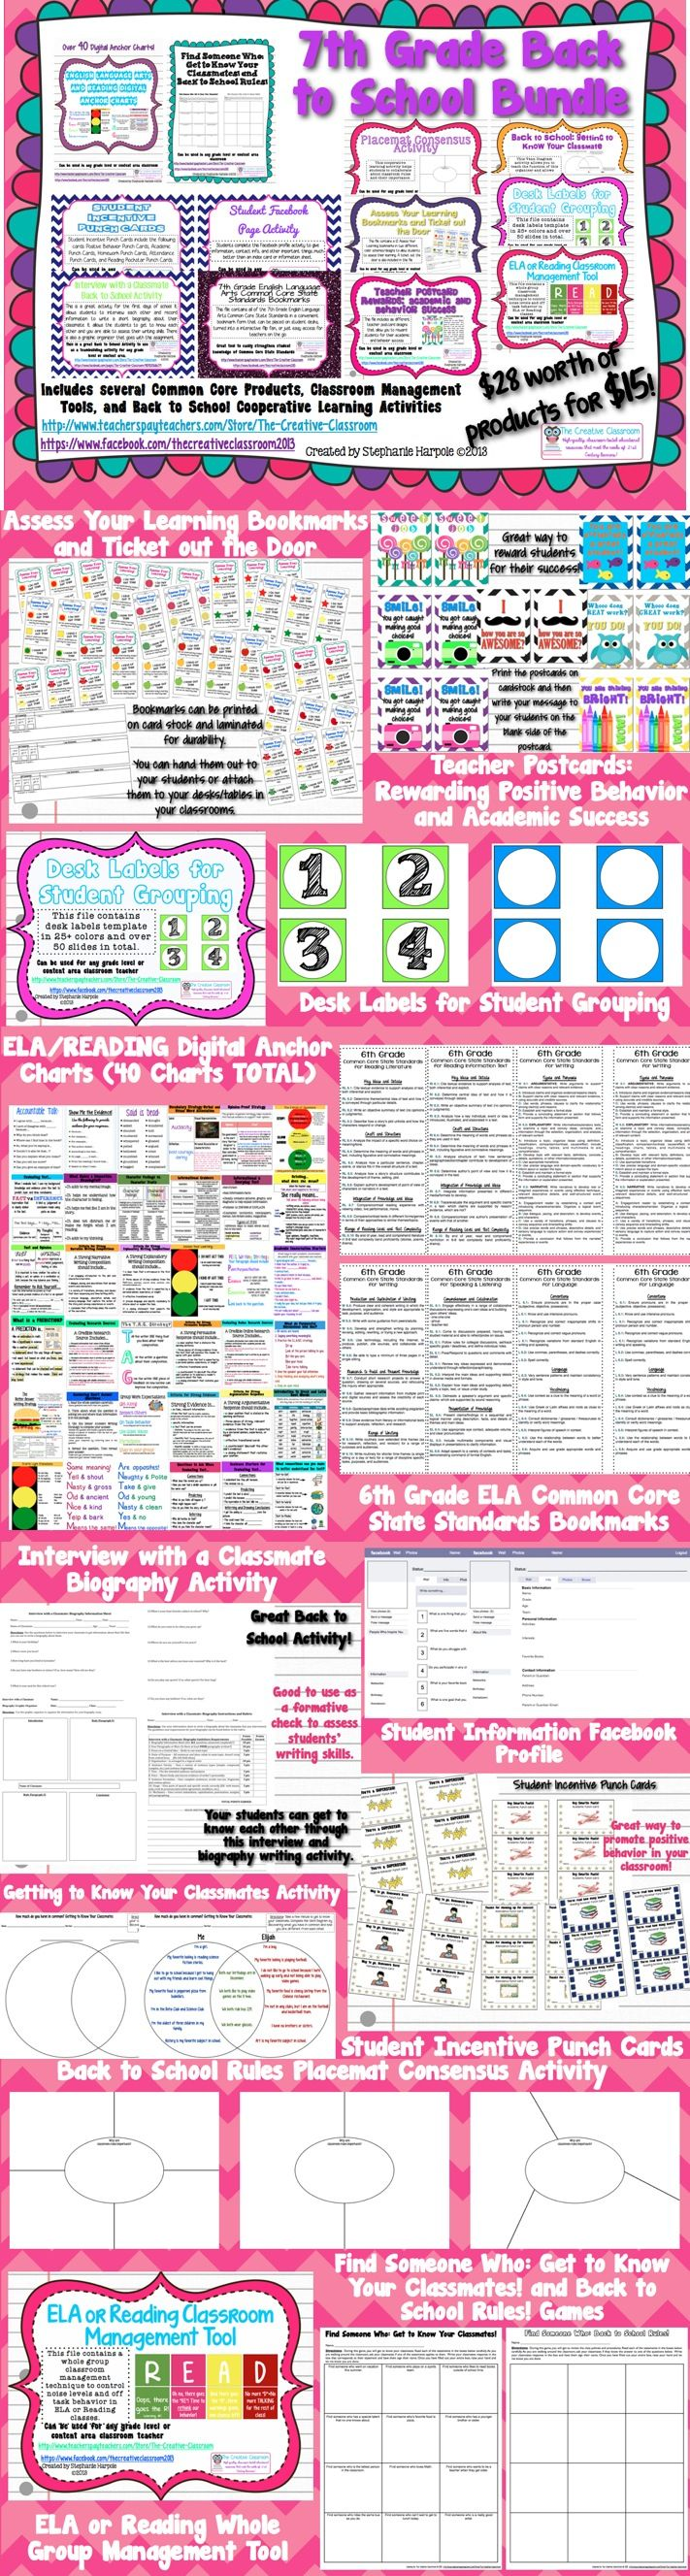 7th Grade ELA Back to School Bundle: 12 Products for only $15.00